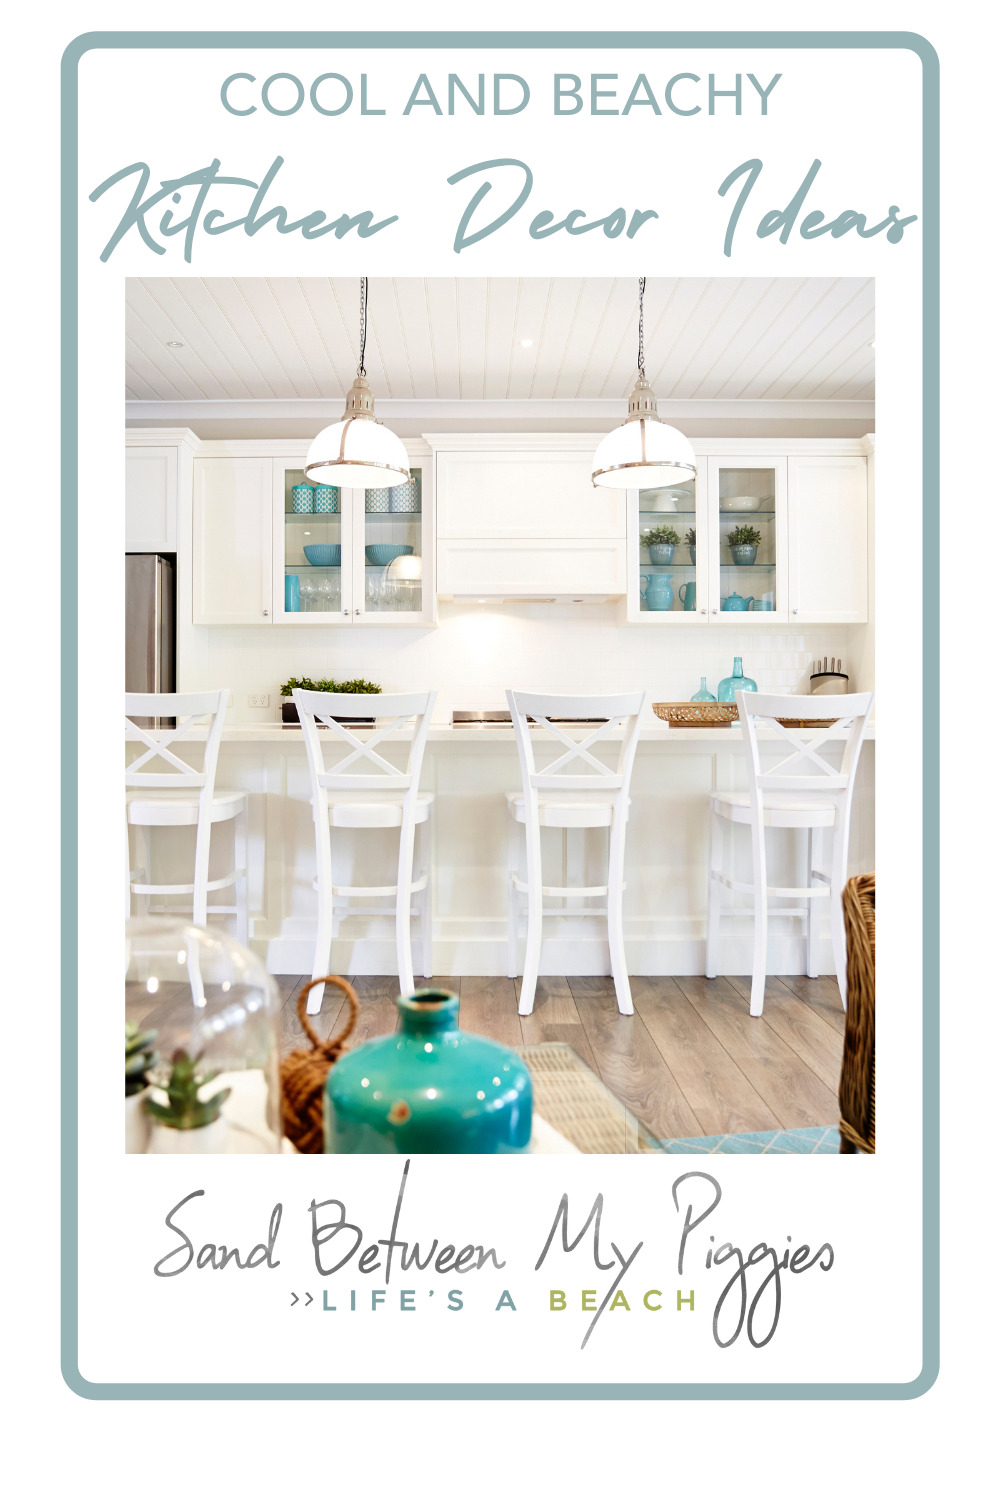 Sandbetweenmypiggies.com is all about the good life. Take a deep breath with travel and beach inspired ideas. Turn your home into an oasis. Try out these ideas for a beachy kitchen overhaul.